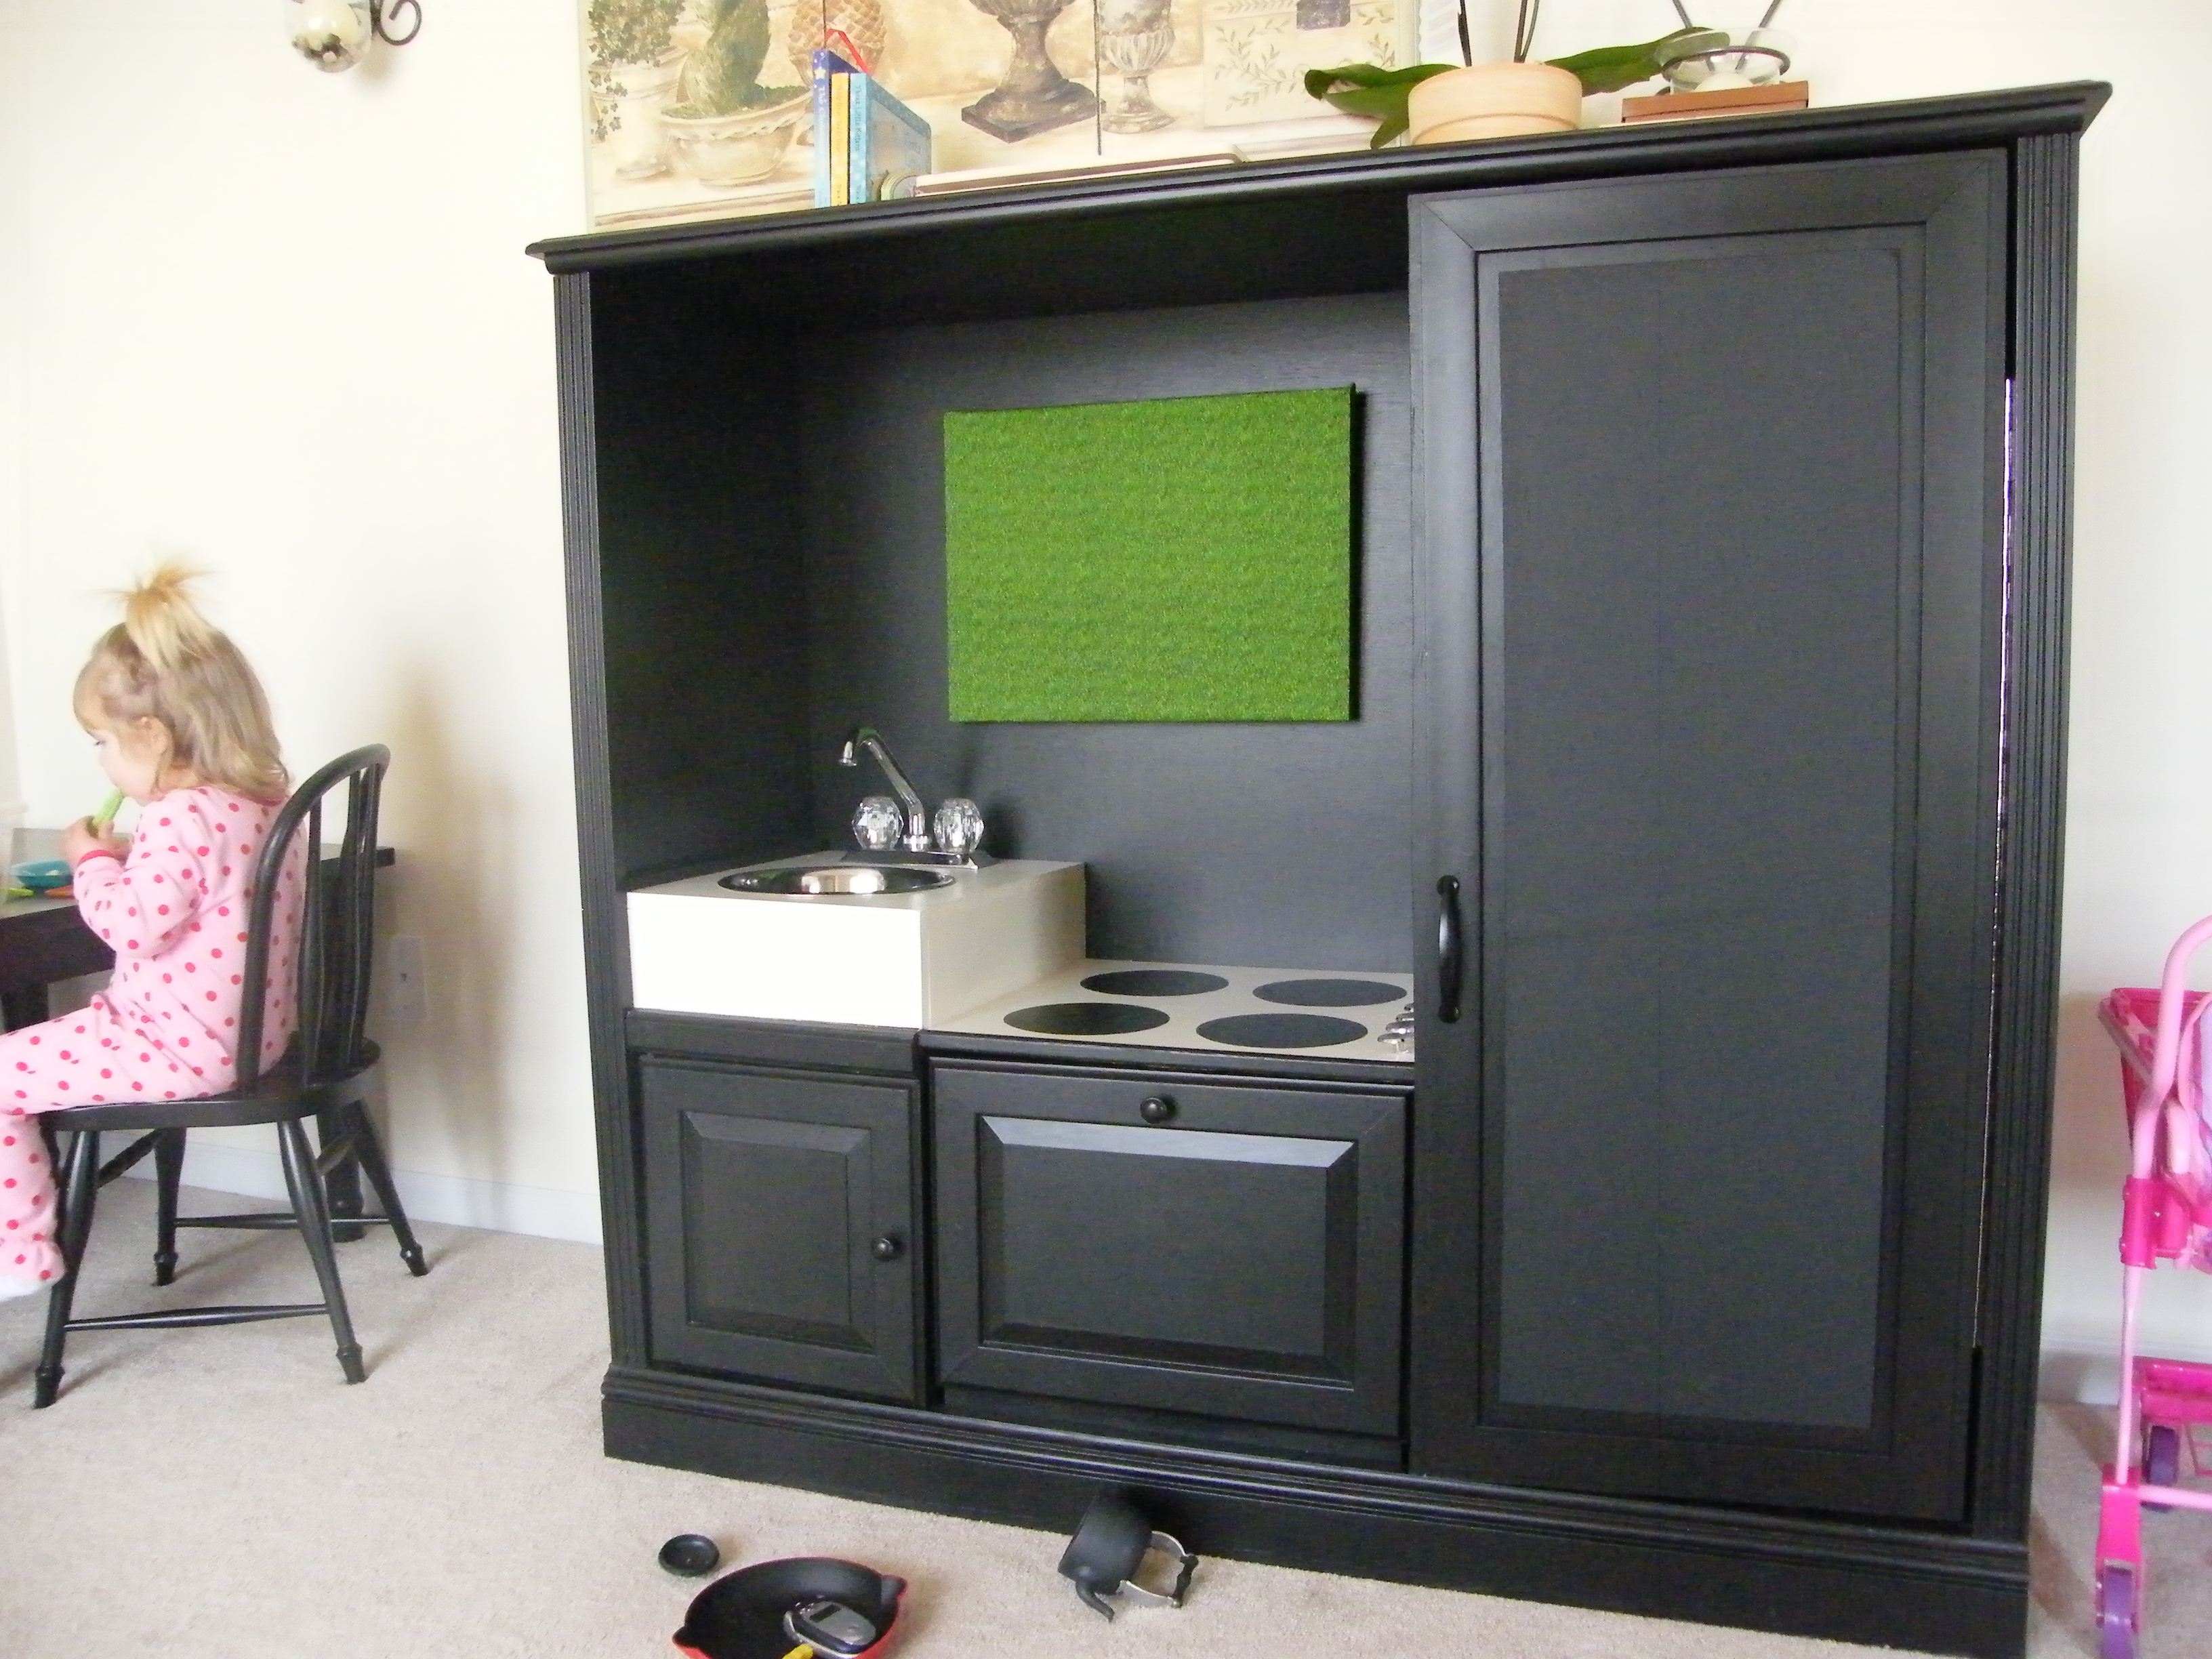 Better Play Kitchens  My blog about making kitchens for kids